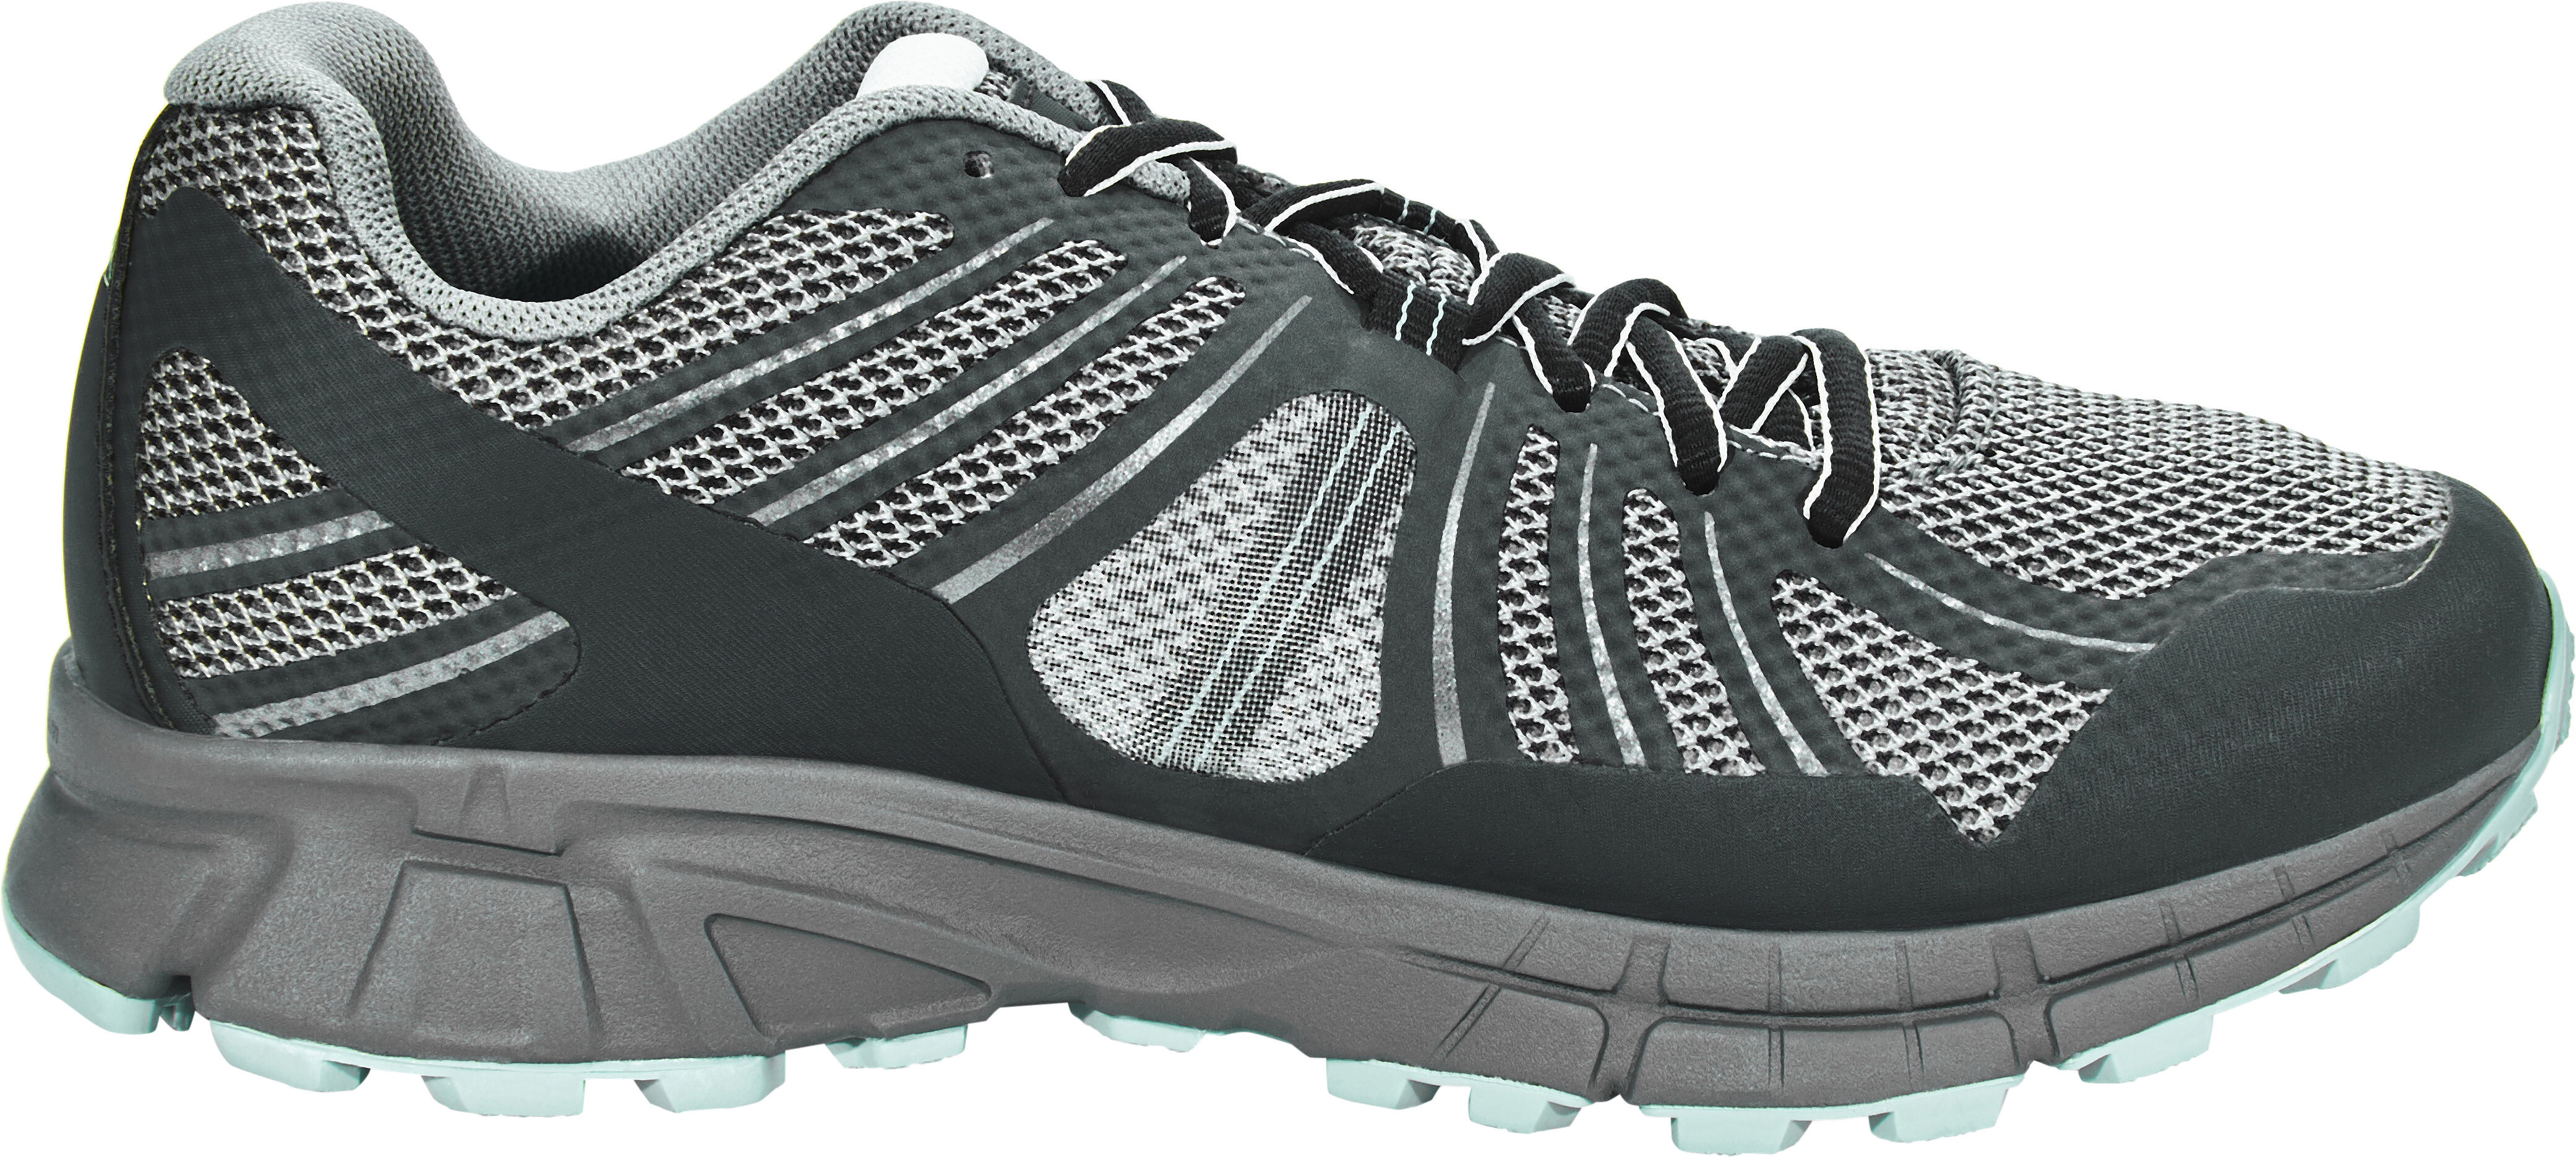 Columbia Mojave Trail Outdry Running Shoes Women grey at Bikester.co.uk 1d69fee56e5